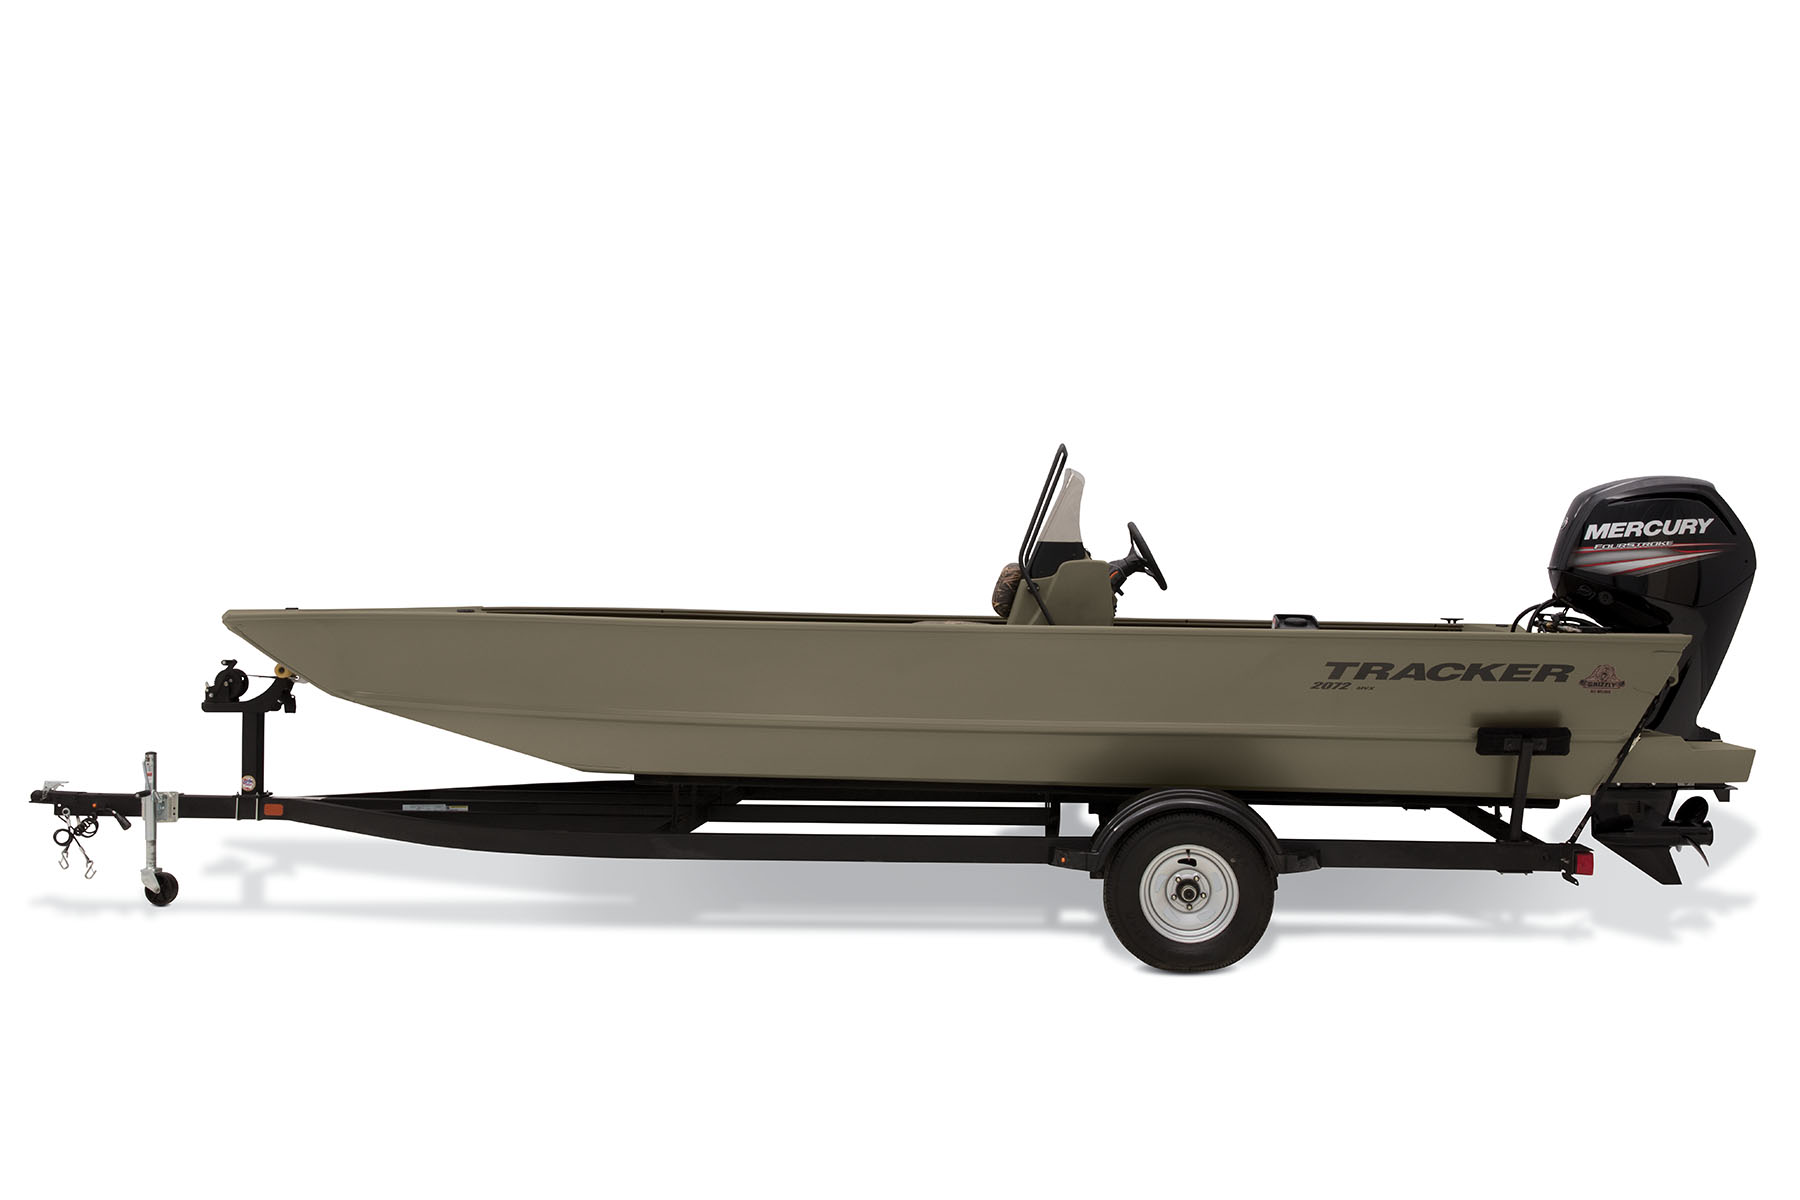 2019 Grizzly 2072 Cc Tracker Hunt And Fish Jon Boat